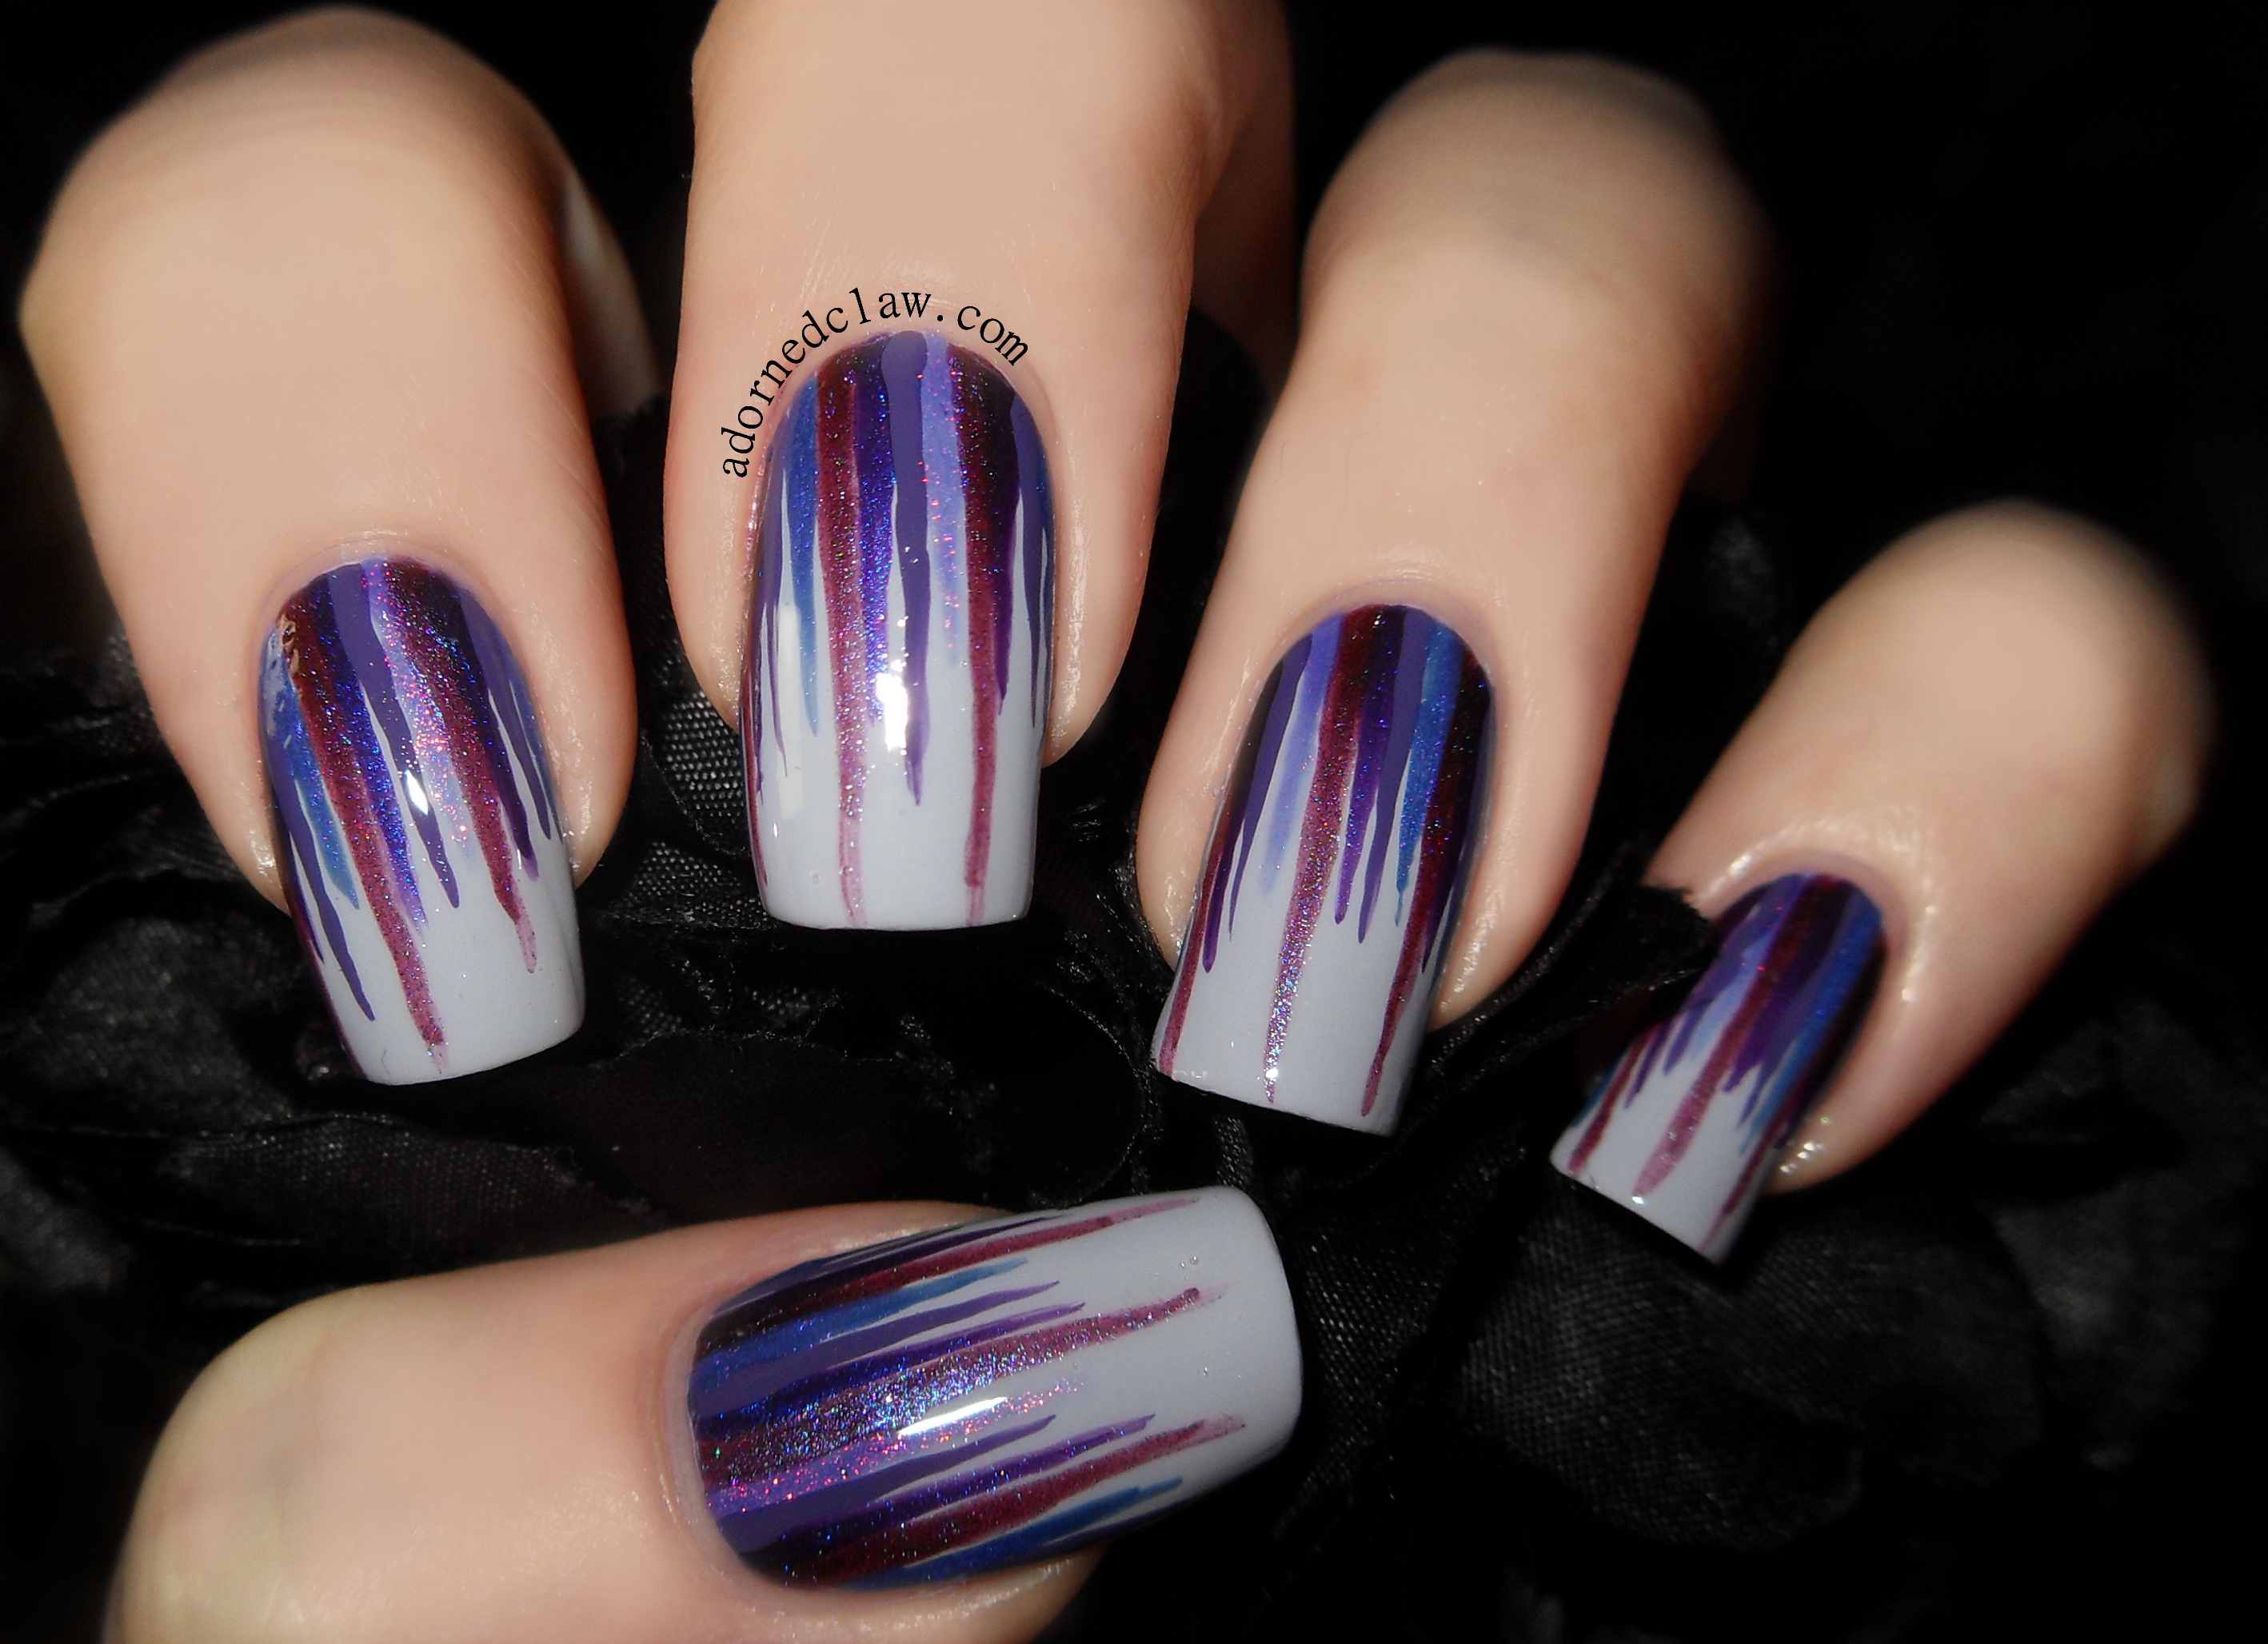 Nails Art: The Adorned Claw